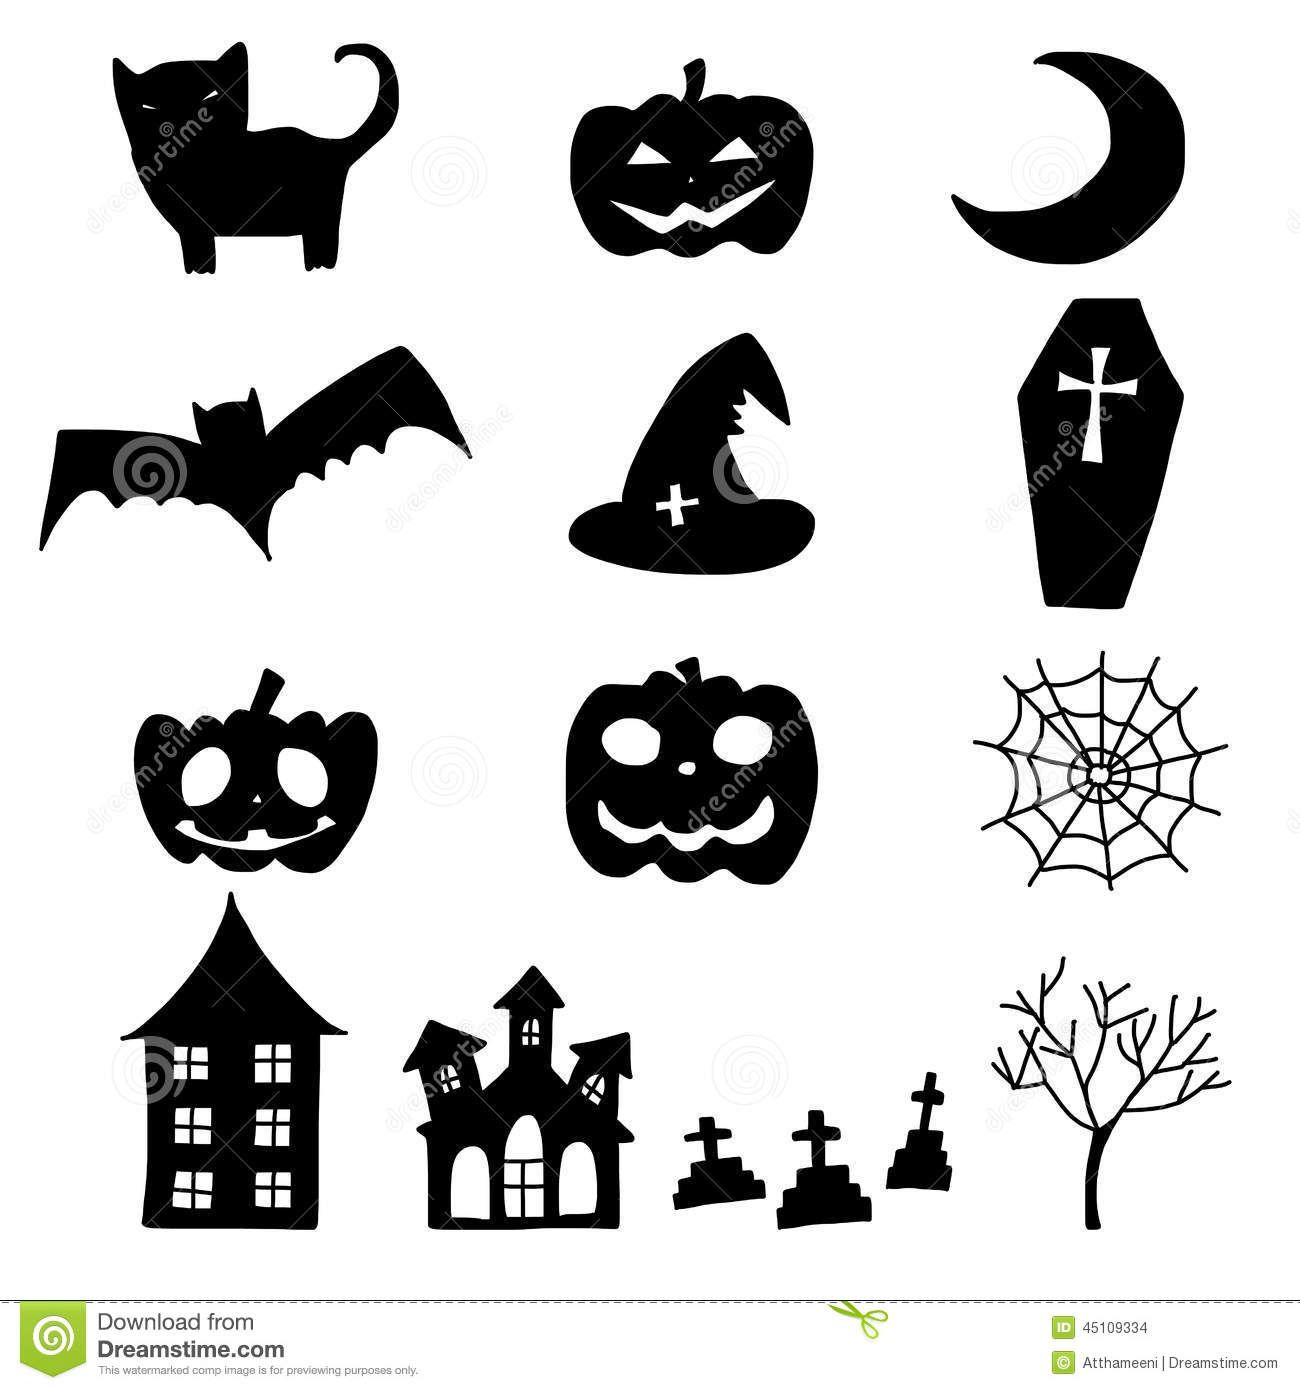 Related image Halloween silhouettes, Halloween doodle